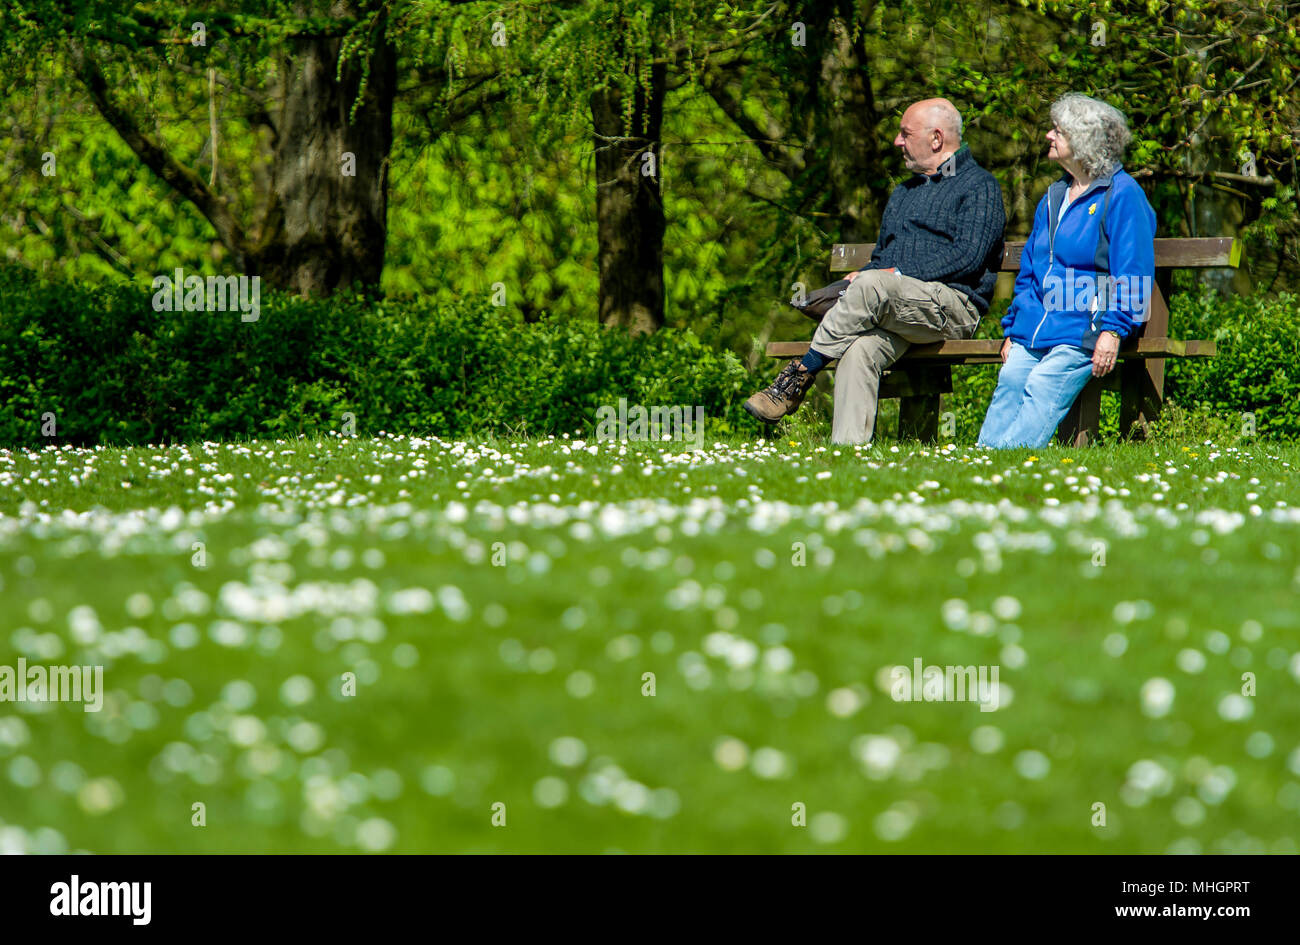 Moses Gate Country Park, Bolton. 1st May, 2018. UK Weather: A beautiful sunny May Day as temperatures begin to rise in Bolton ahead of the bank holiday weekend. A couple take a break in the sunshine at Moses Gate Country Park, Bolton. Picture by Paul Heyes, Monday May 1st, 2018. Credit: Paul Heyes/Alamy Live News - Stock Image